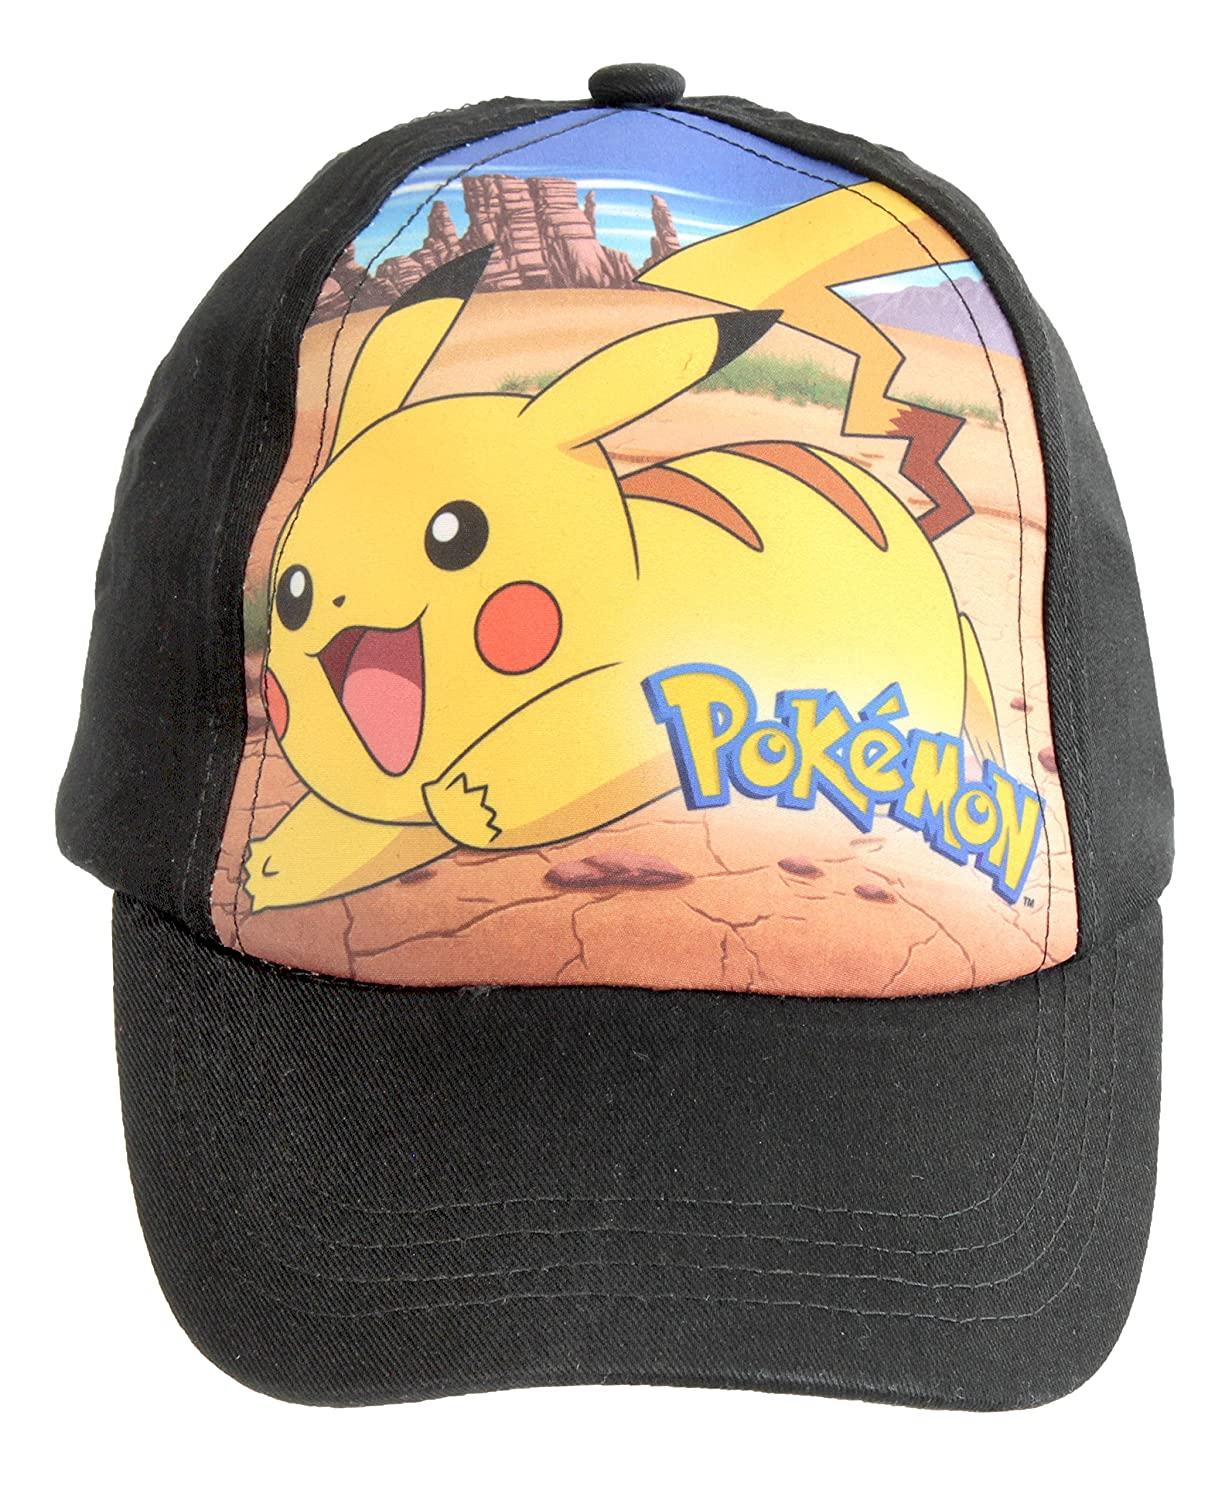 Pokemon Official Licensed Black Pikachu Design Baseball Cap Hat One Size 4-12 Years